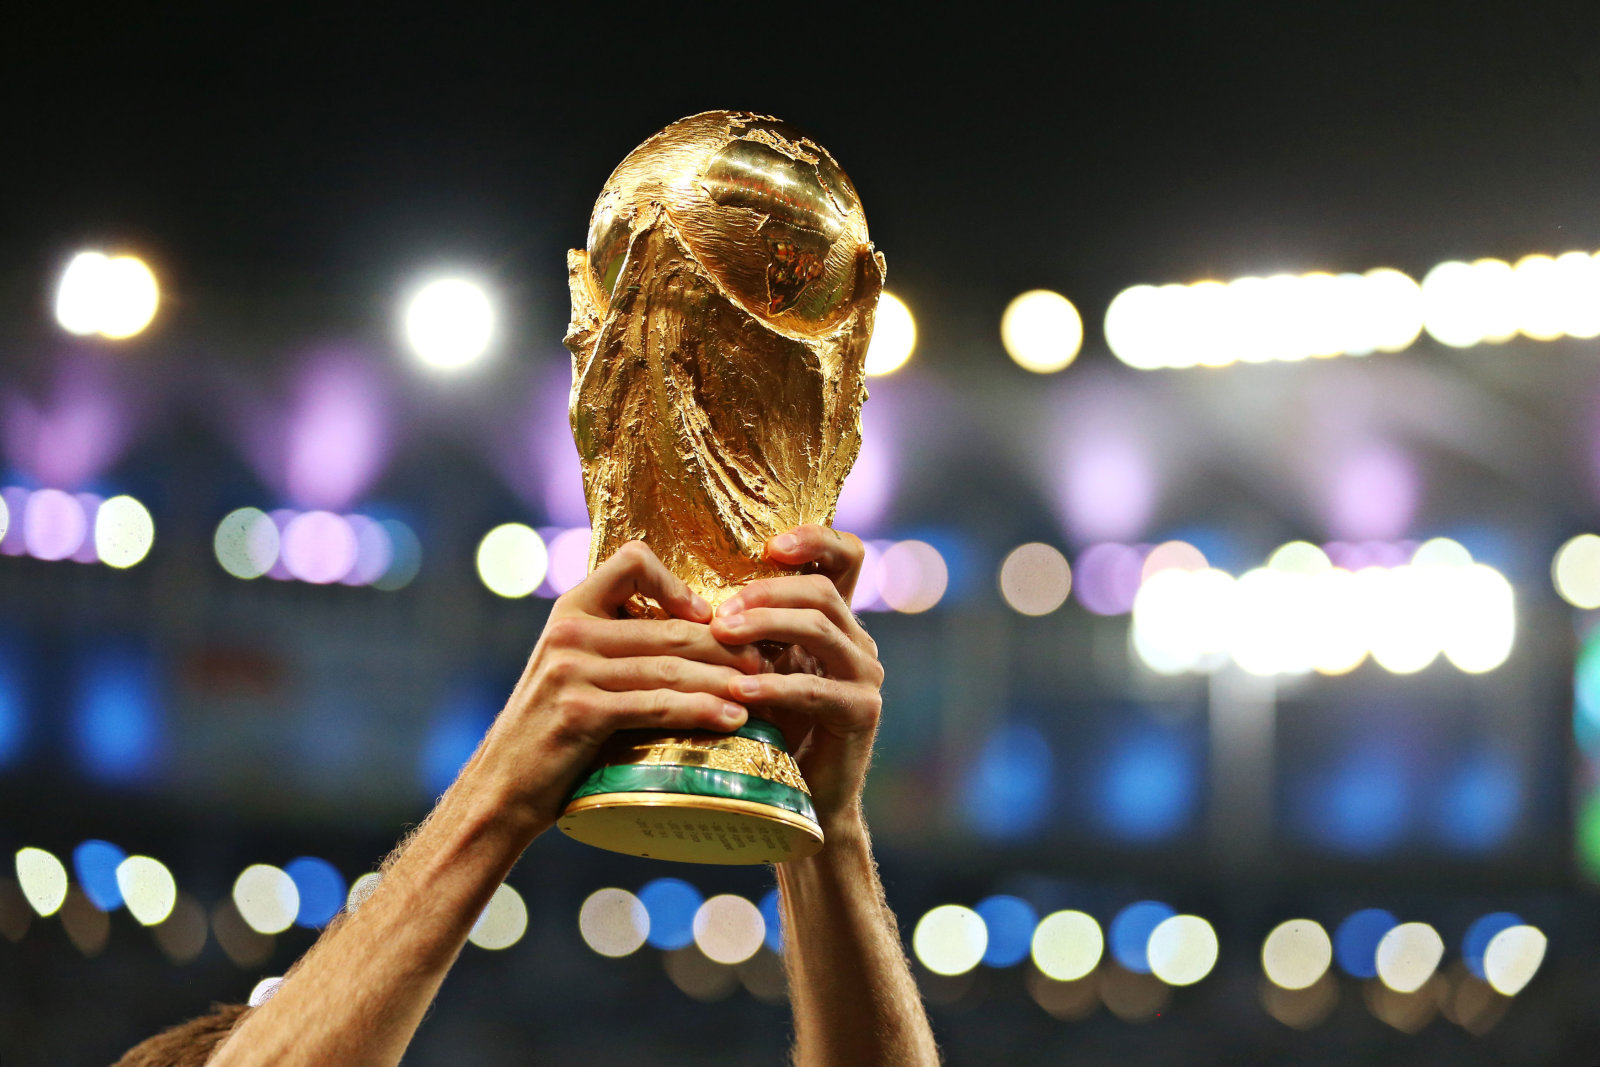 File photo dated 13/07/14 of a player lifting the FIFA World Cup Trophy, as the tournament in Russia is set to start on the 14th June.